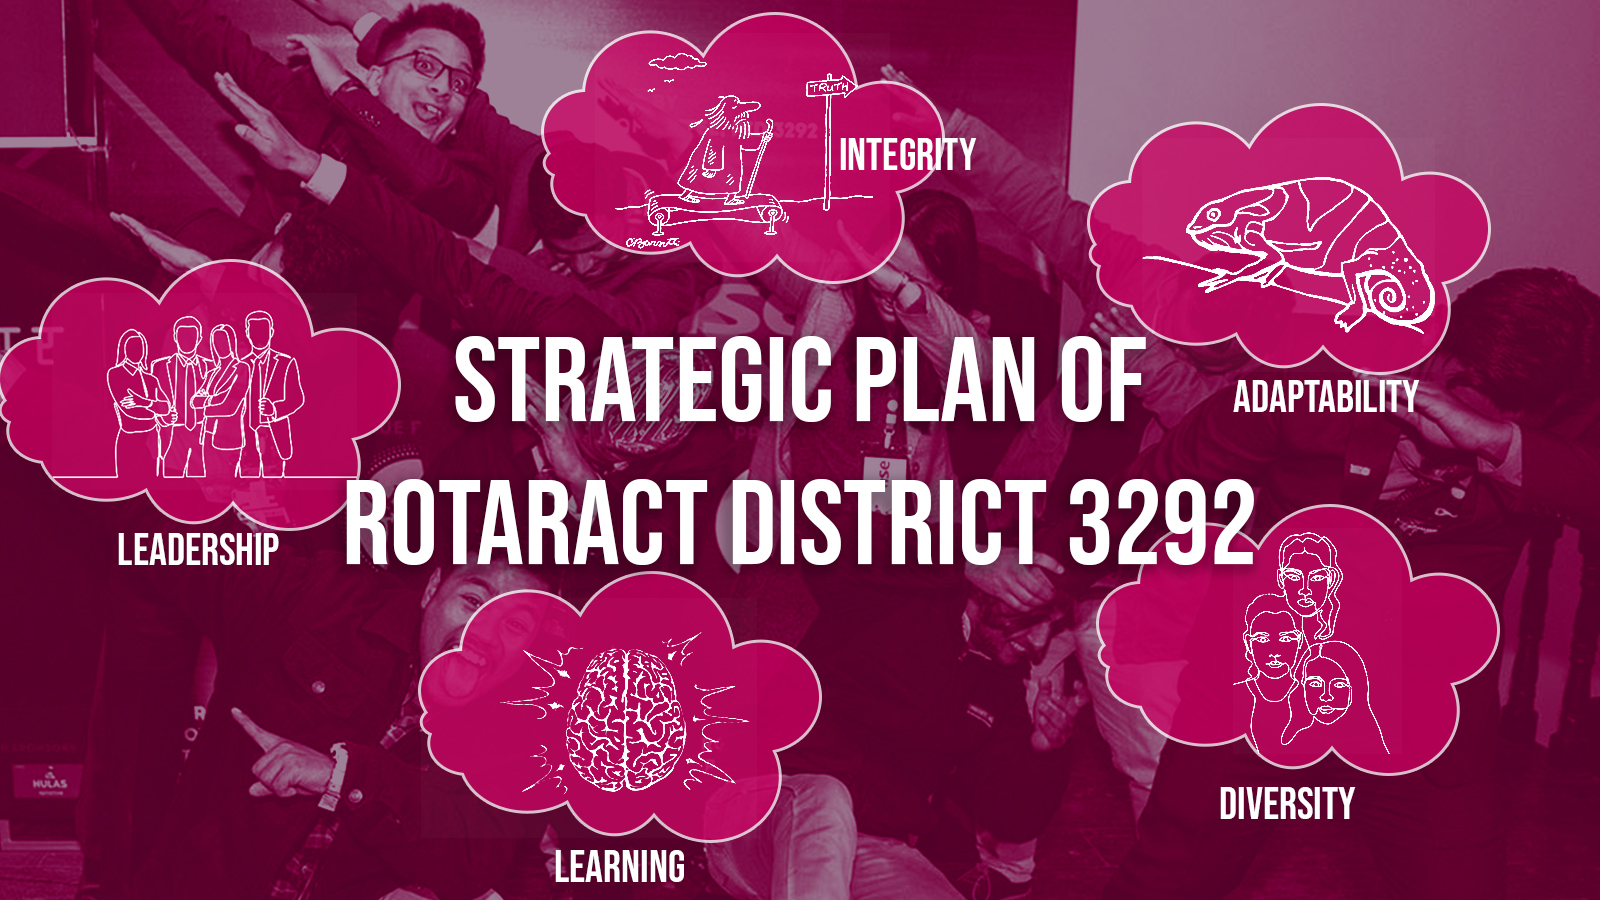 Mission, Vision & Strategic Priorities of Rotaract District 3292